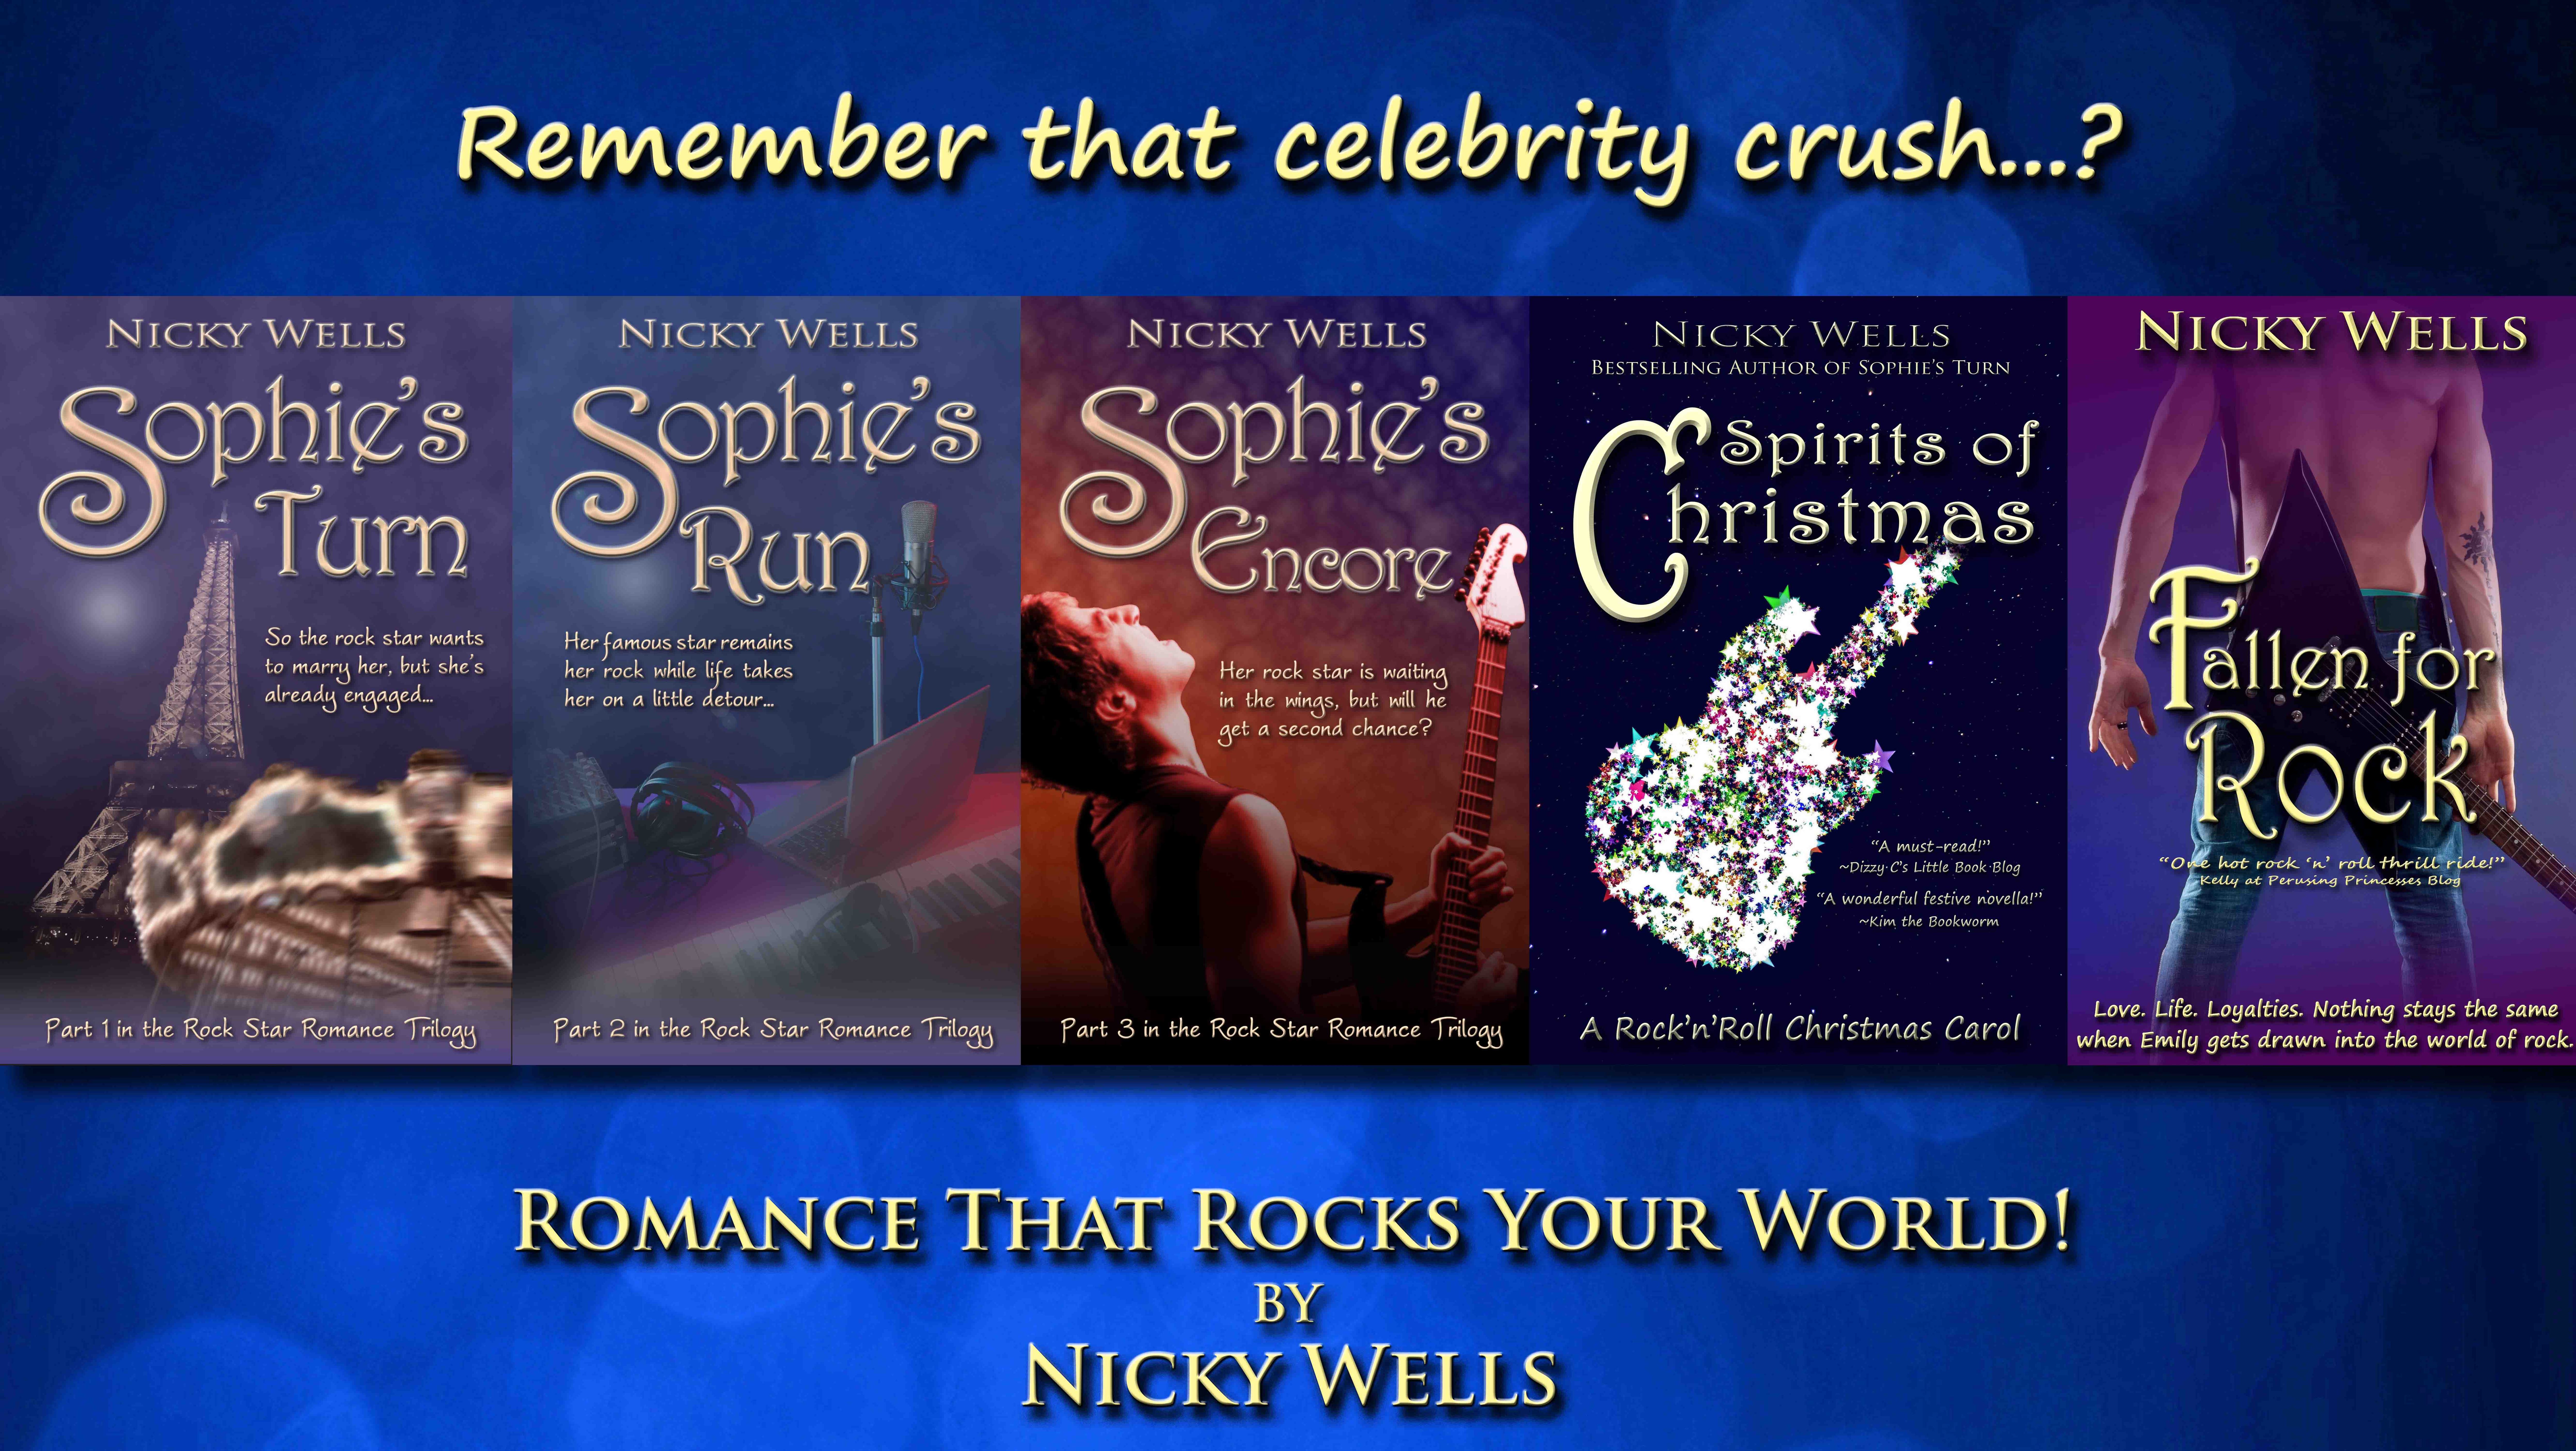 About Nicky Wells: Romance That Rocks Your World!